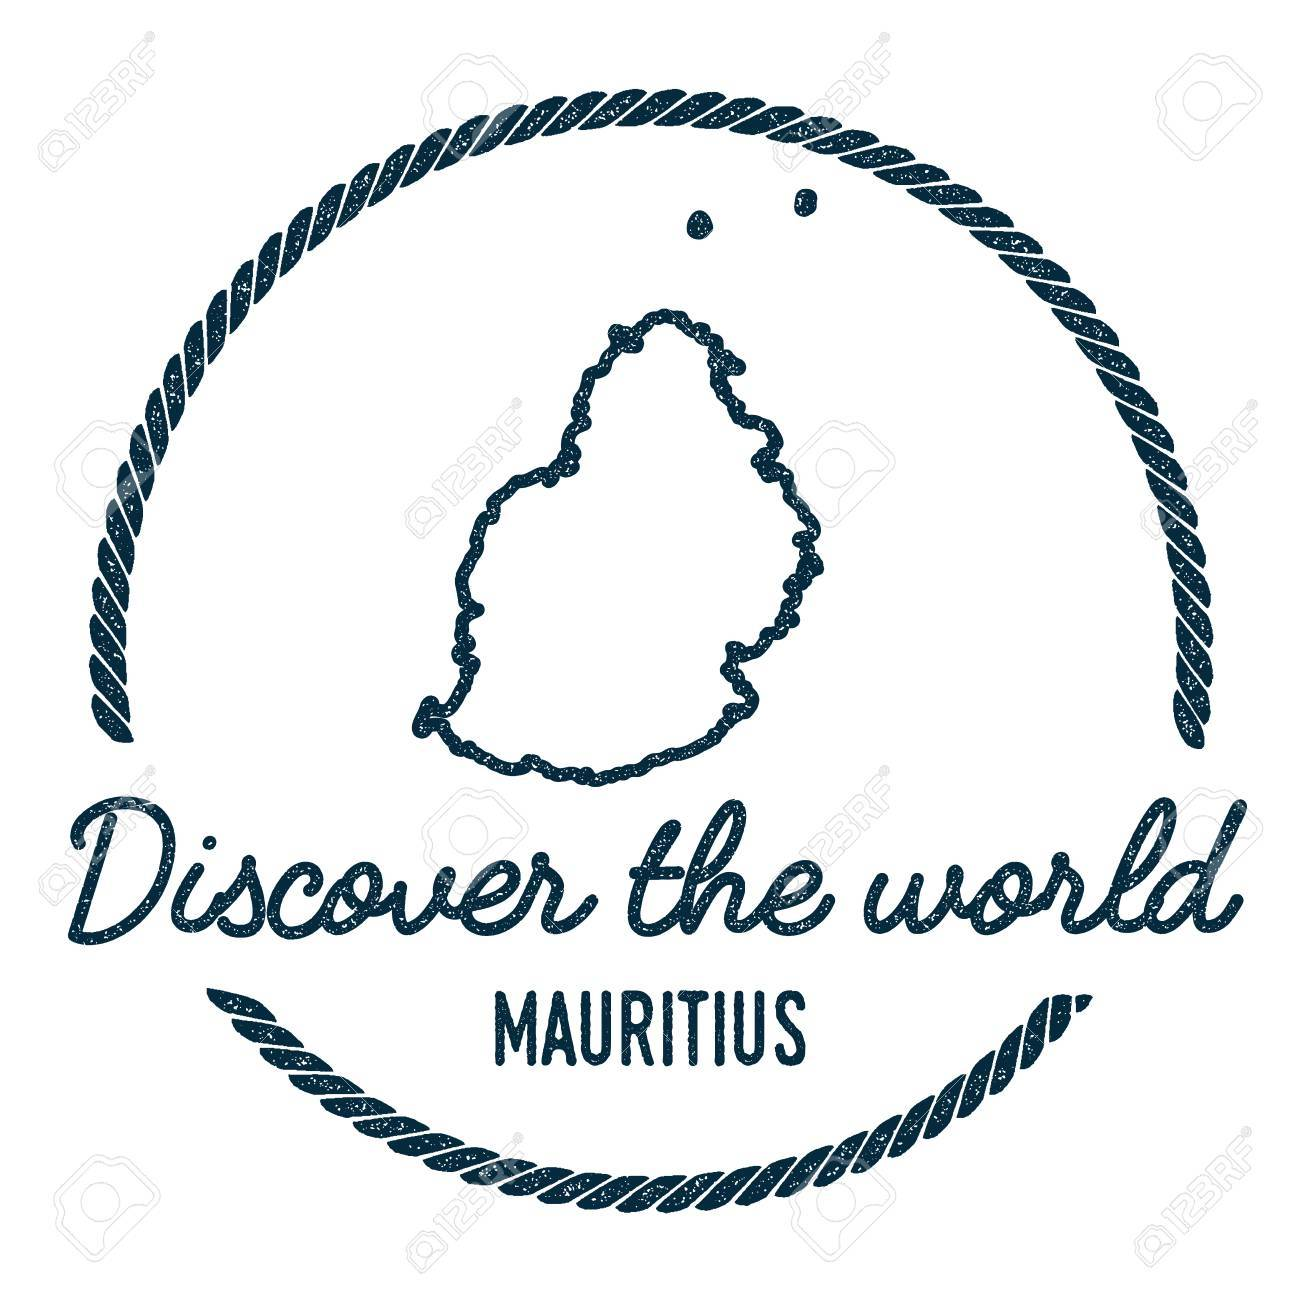 Mauritius Map Outline. Vintage Discover the World Rubber Stamp..